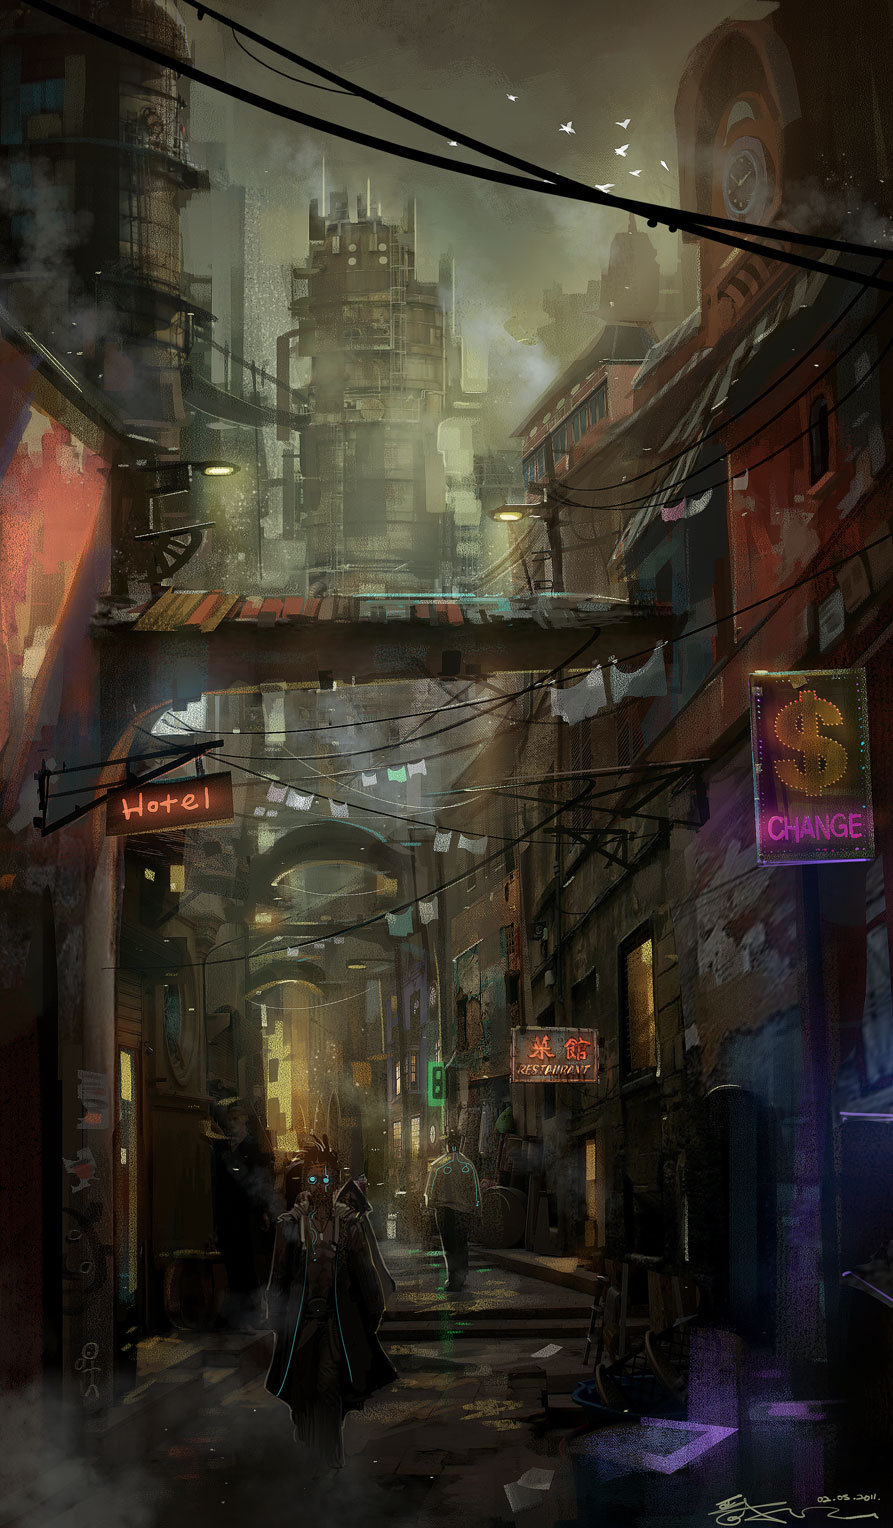 Jeremy chong my old street